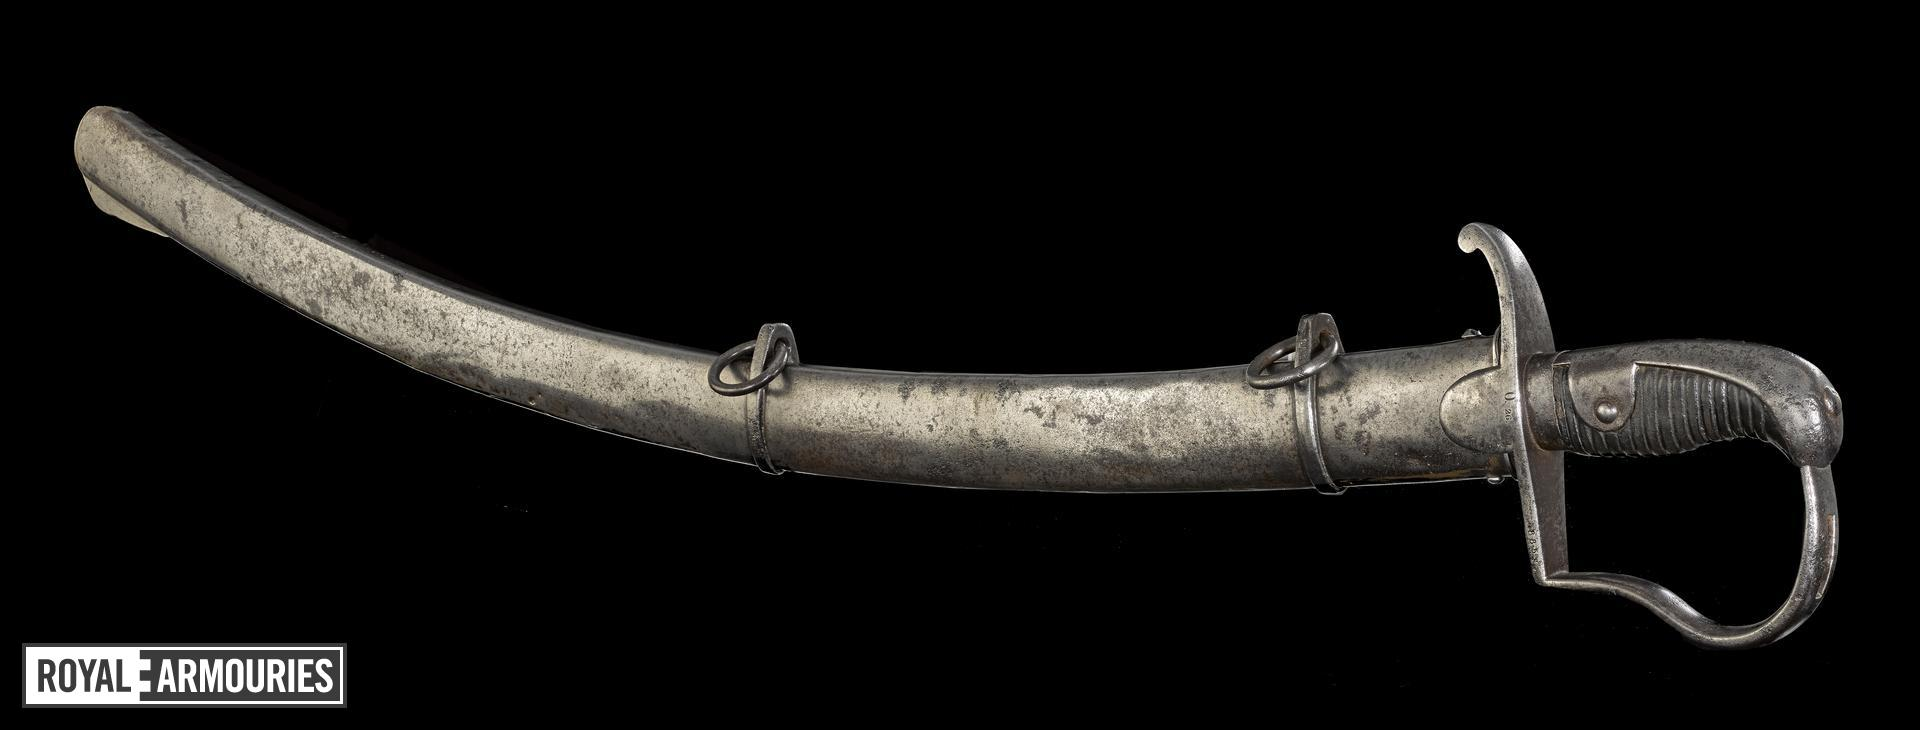 Light Cavalry sabre and scabbard, early19th century, probably Prussian (IX.5408)